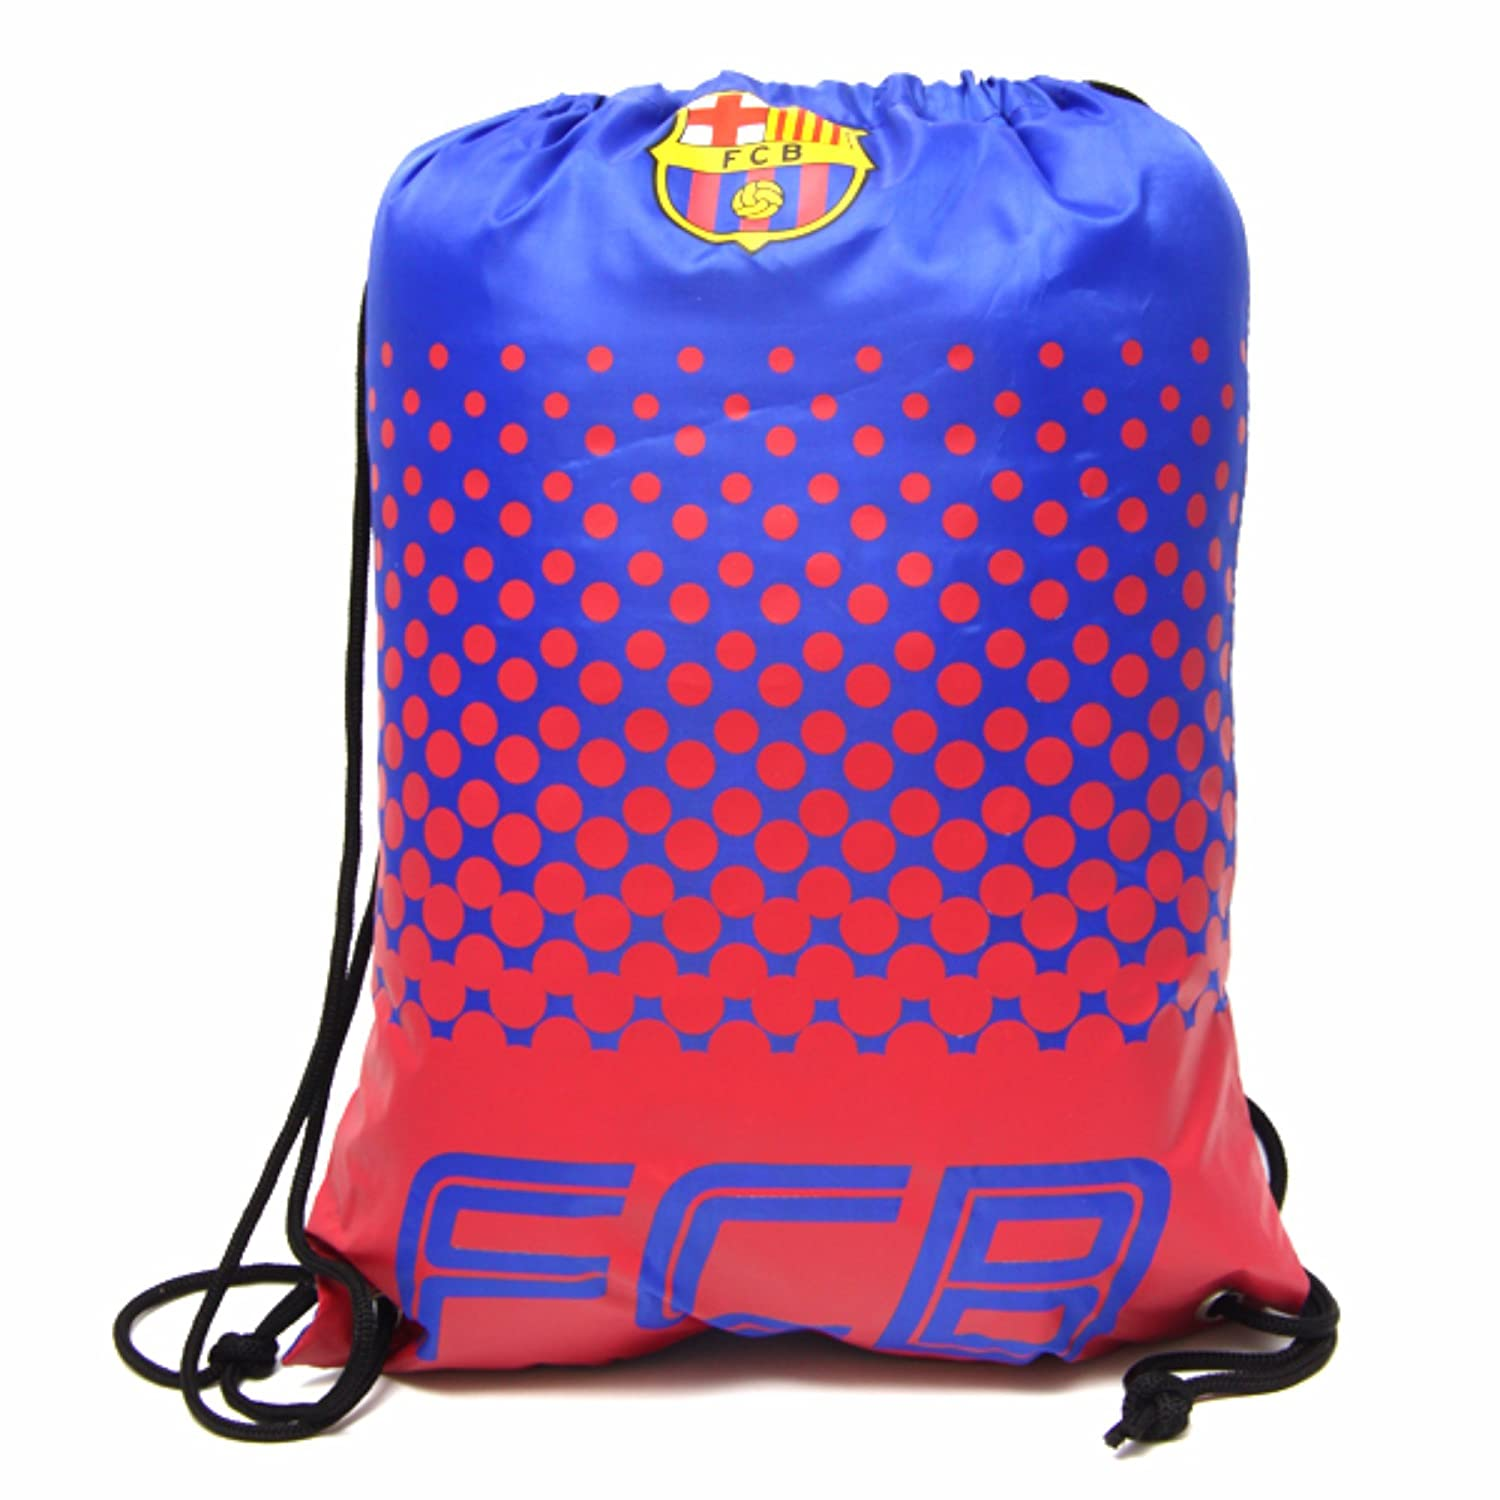 F.C. Barcelona Gym Bag UTSG10153_1